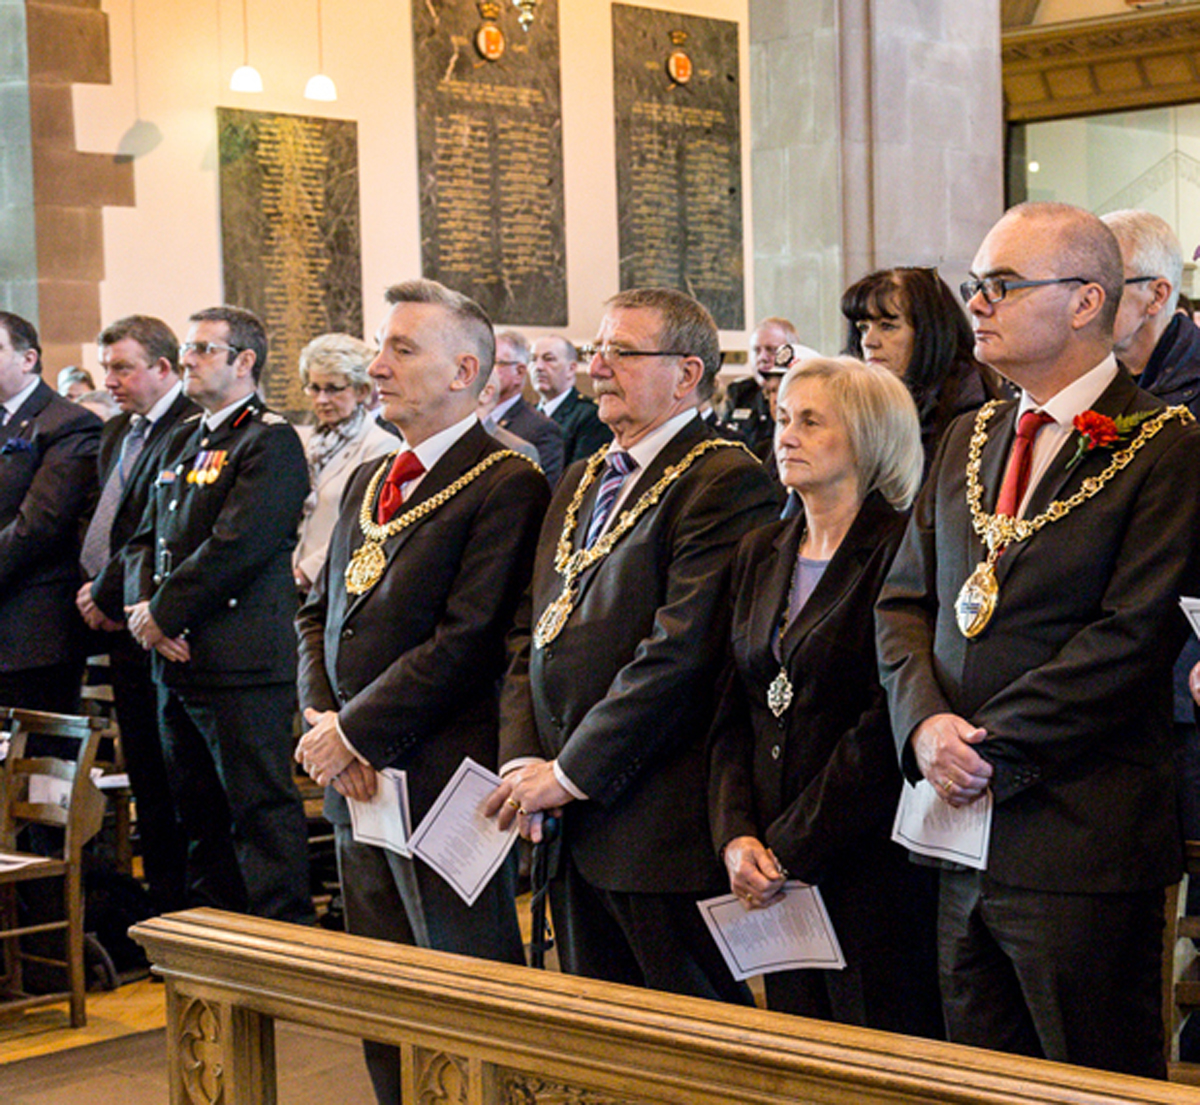 Wirral mayor David Mitchell among those at the 40th anniversary service. Picture: Tony Thomas